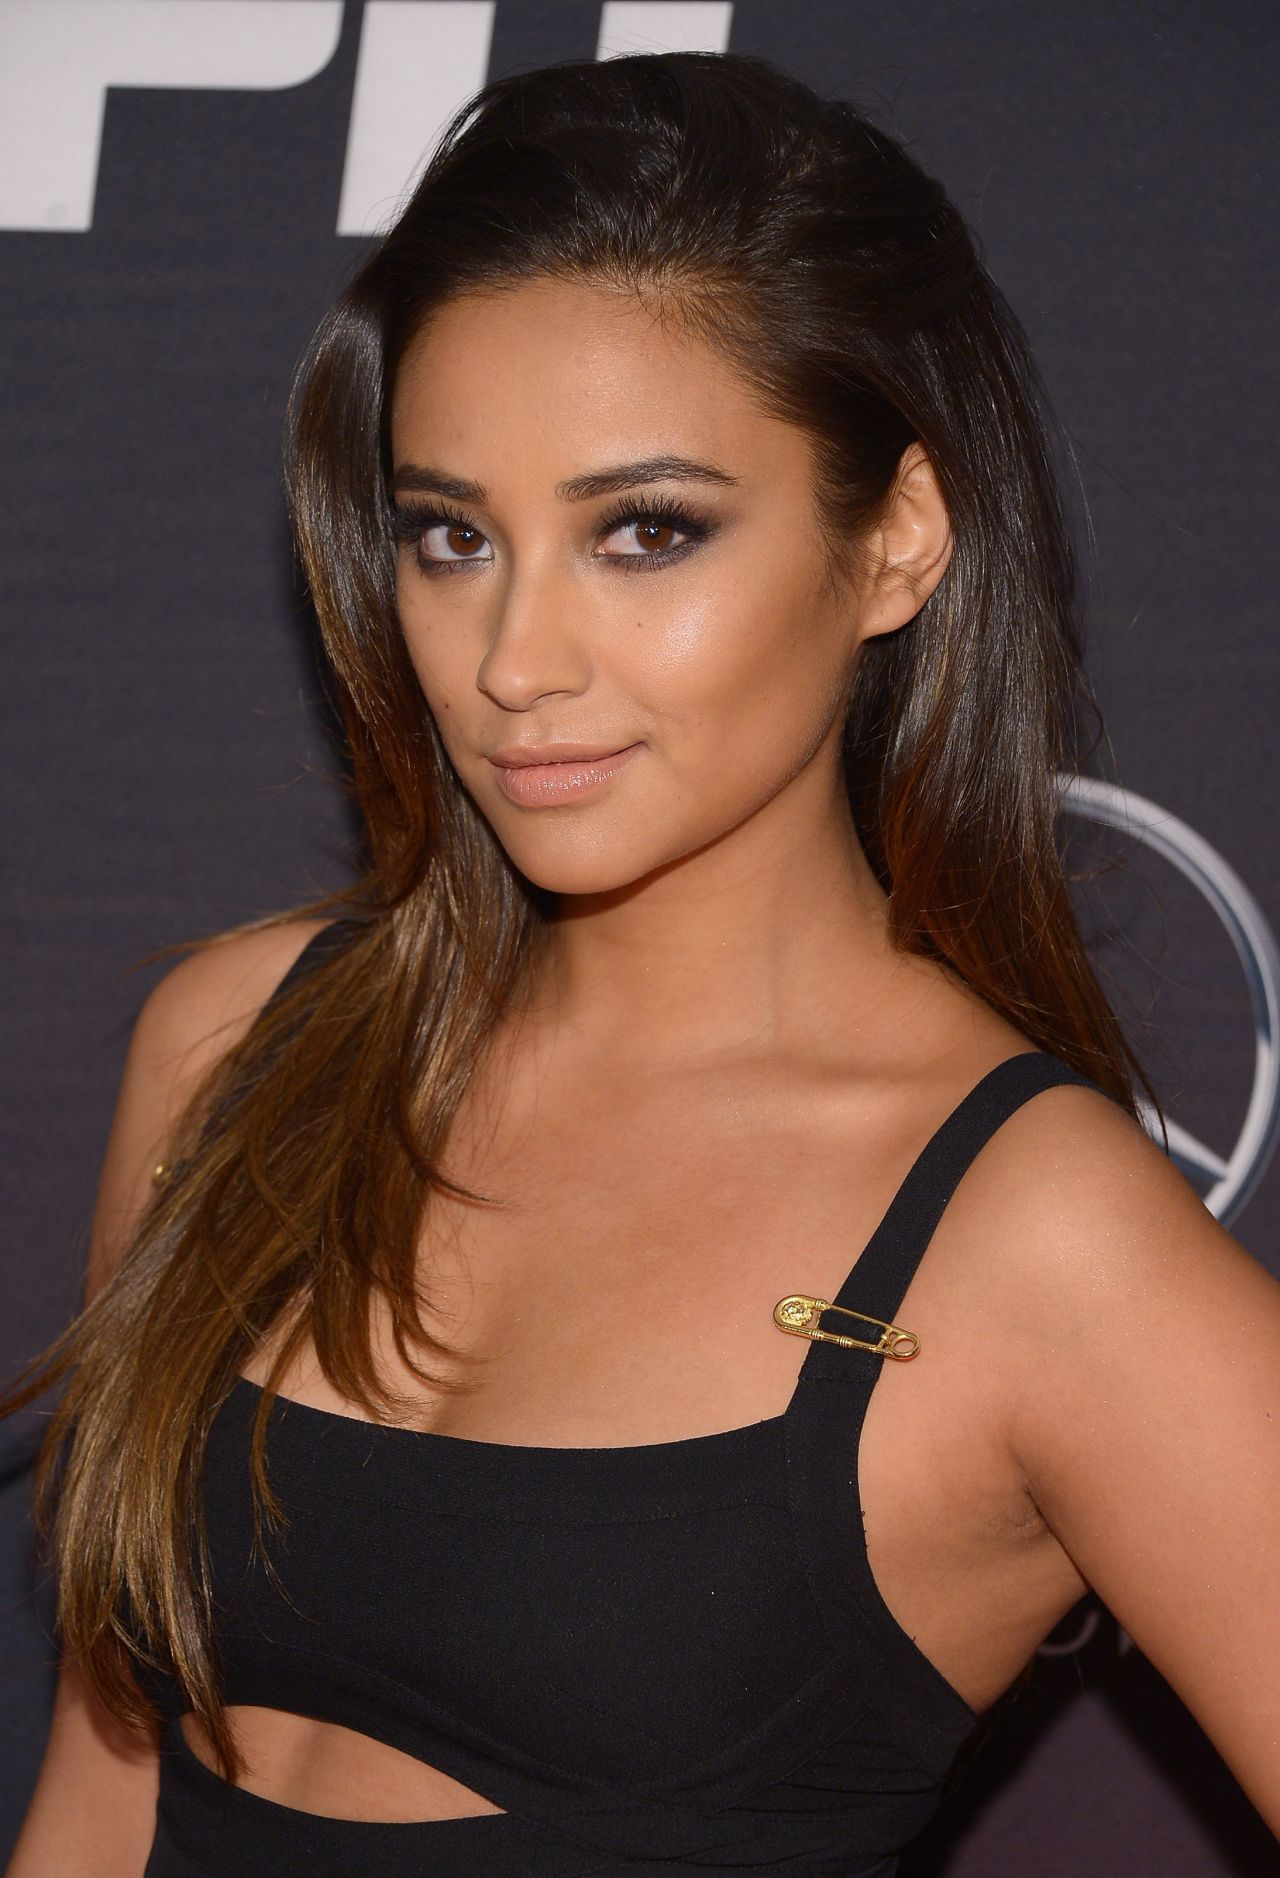 shay-mitchell-espn-the-party-in-ny-january-2014_1